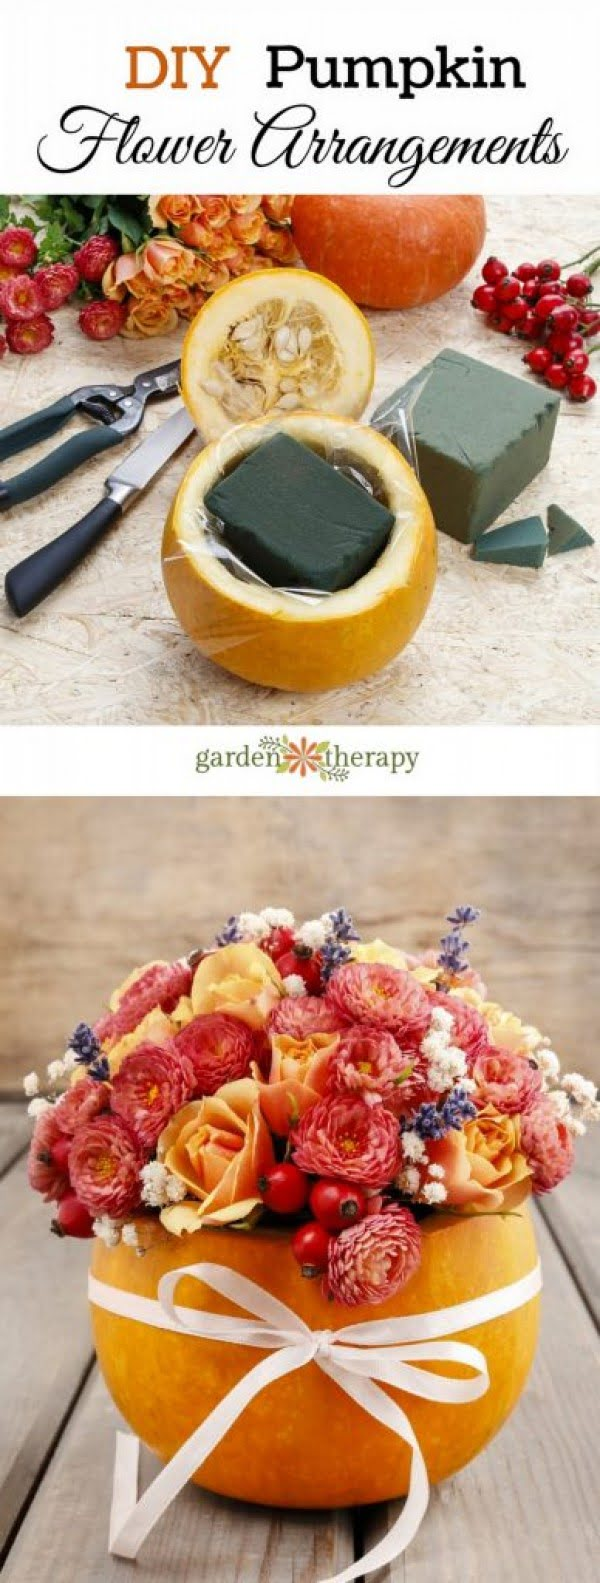 Check out how to make an easy DIY pumpkin flower arrangement for Thanksgiving decor